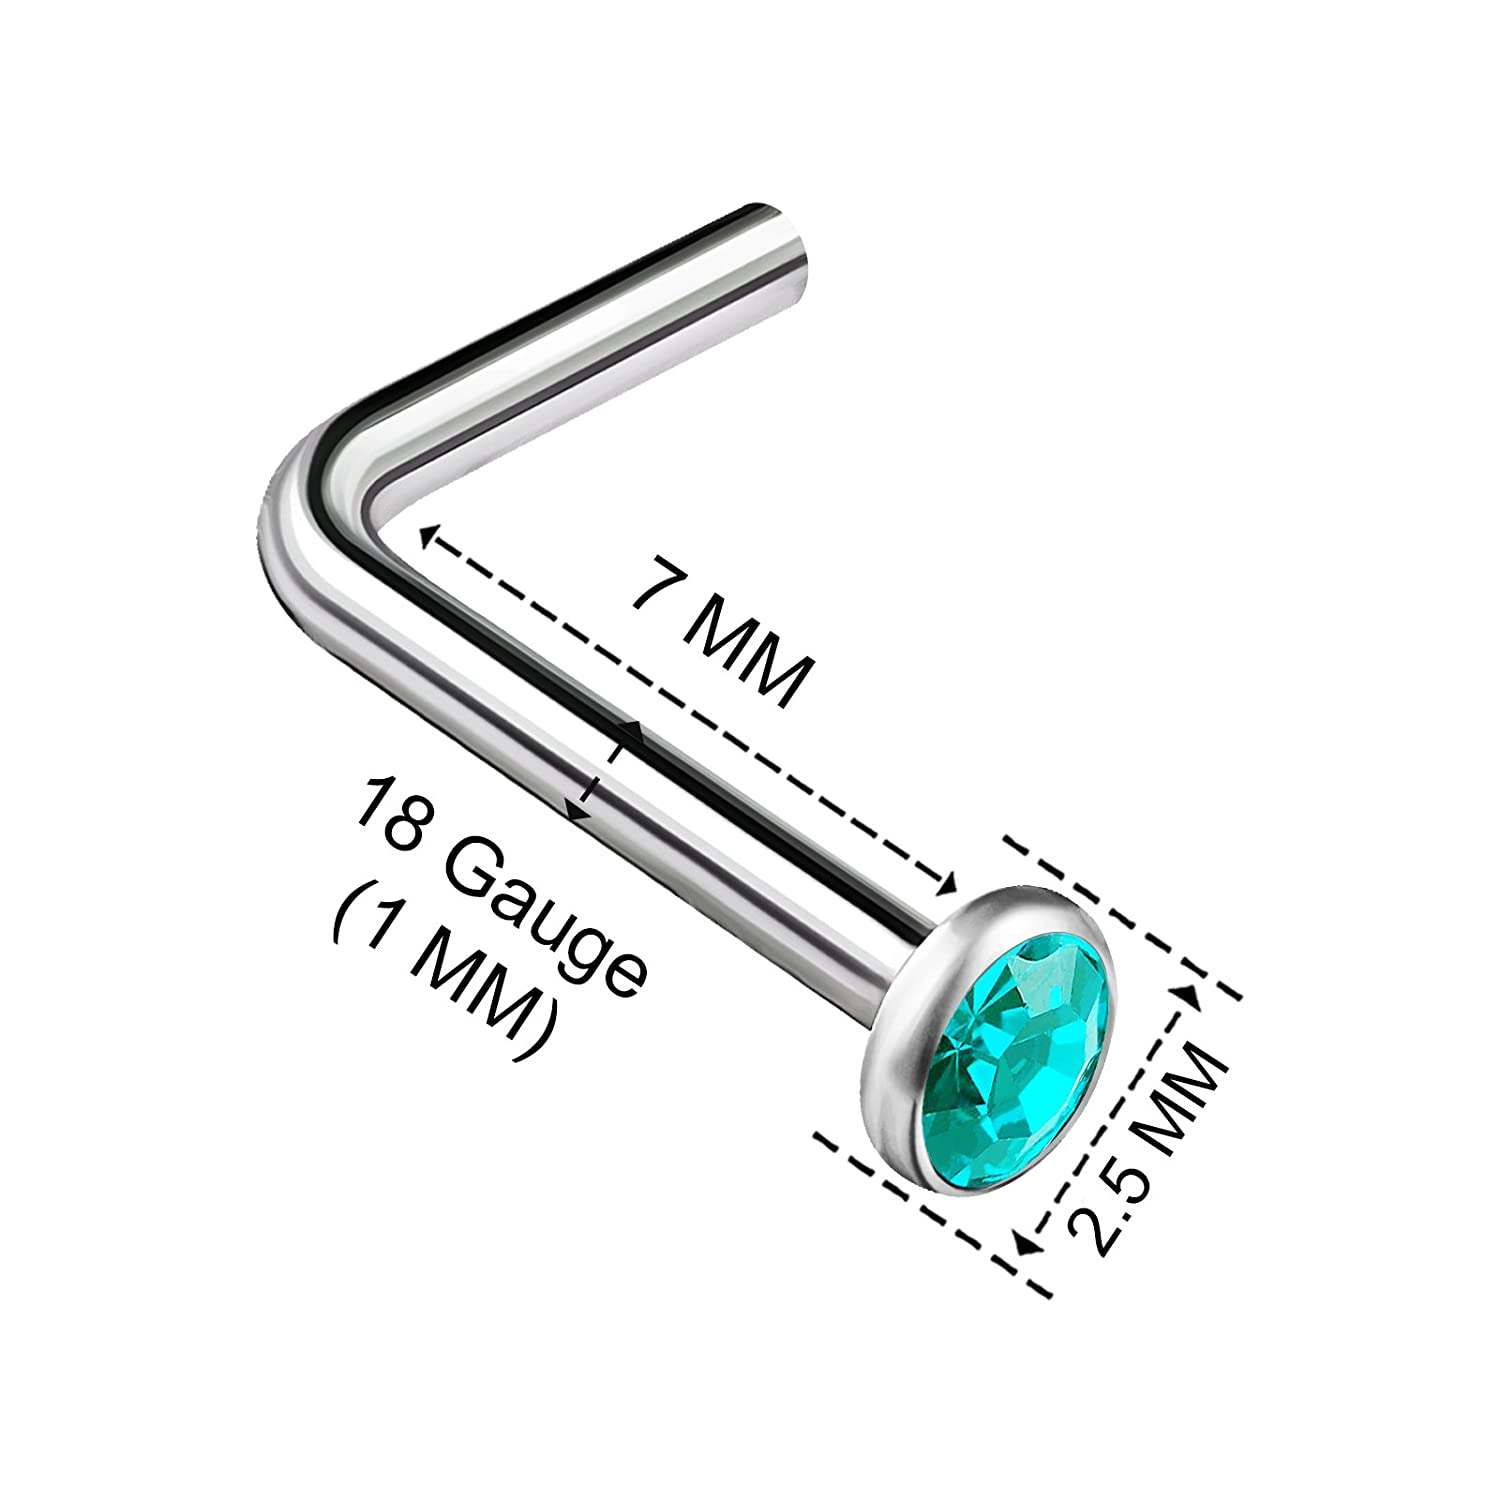 BanaVega 2PCS Surgical Steel L Shaped Nose Ring 18g 1mm 7mm Flesh Nostril Screw Crystal Stud Piercing Jewelry See More Colors UK/_B0772PZY3F